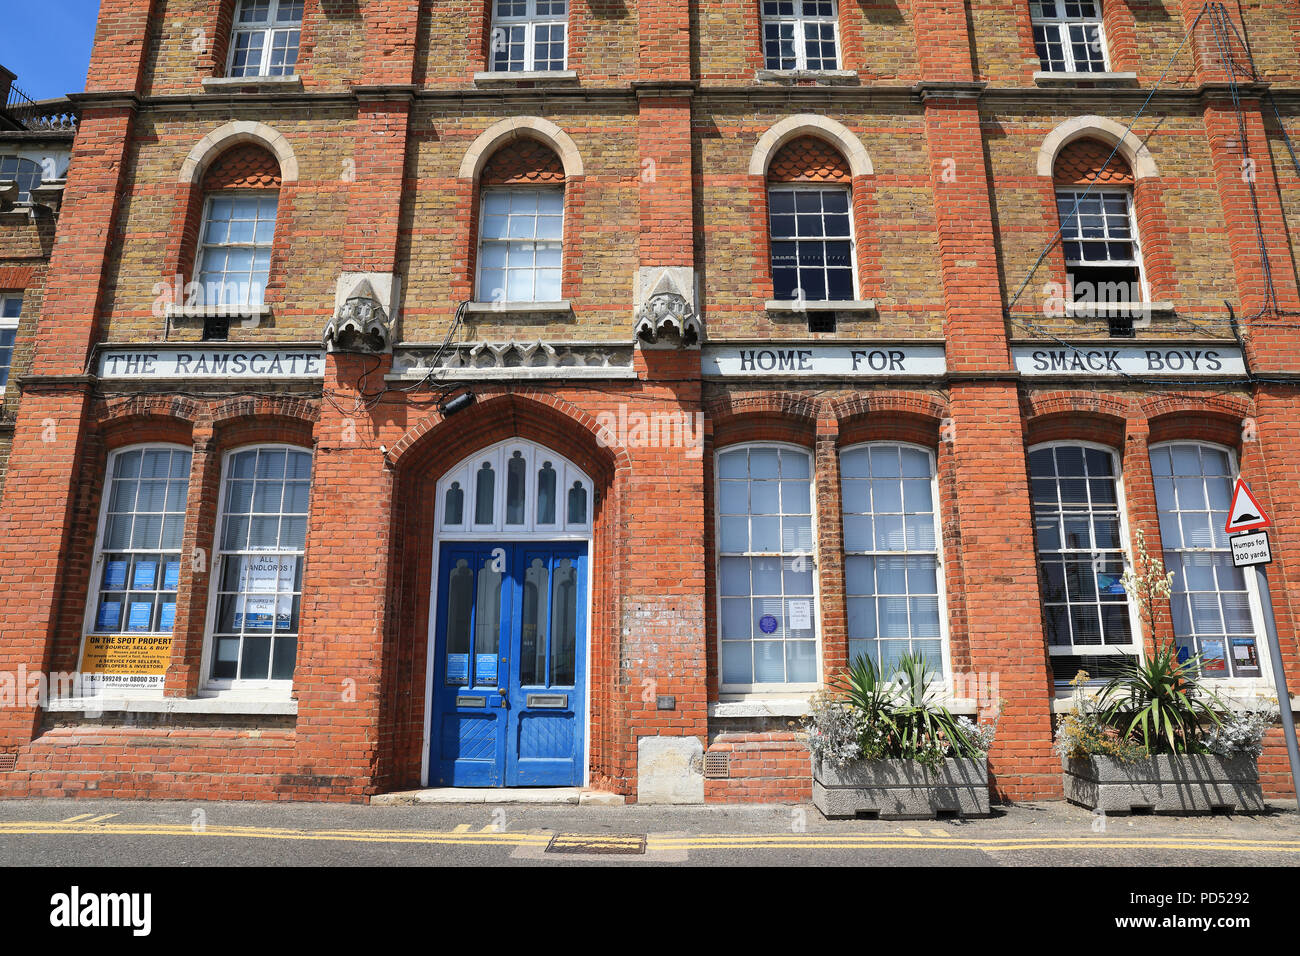 The Ramsgate Home for Smack Boys, or fishing apprentices, next to the Sailors' Church, on Ramsgate's harbour, on the Isle of Thanet, in Kent, UK - Stock Image